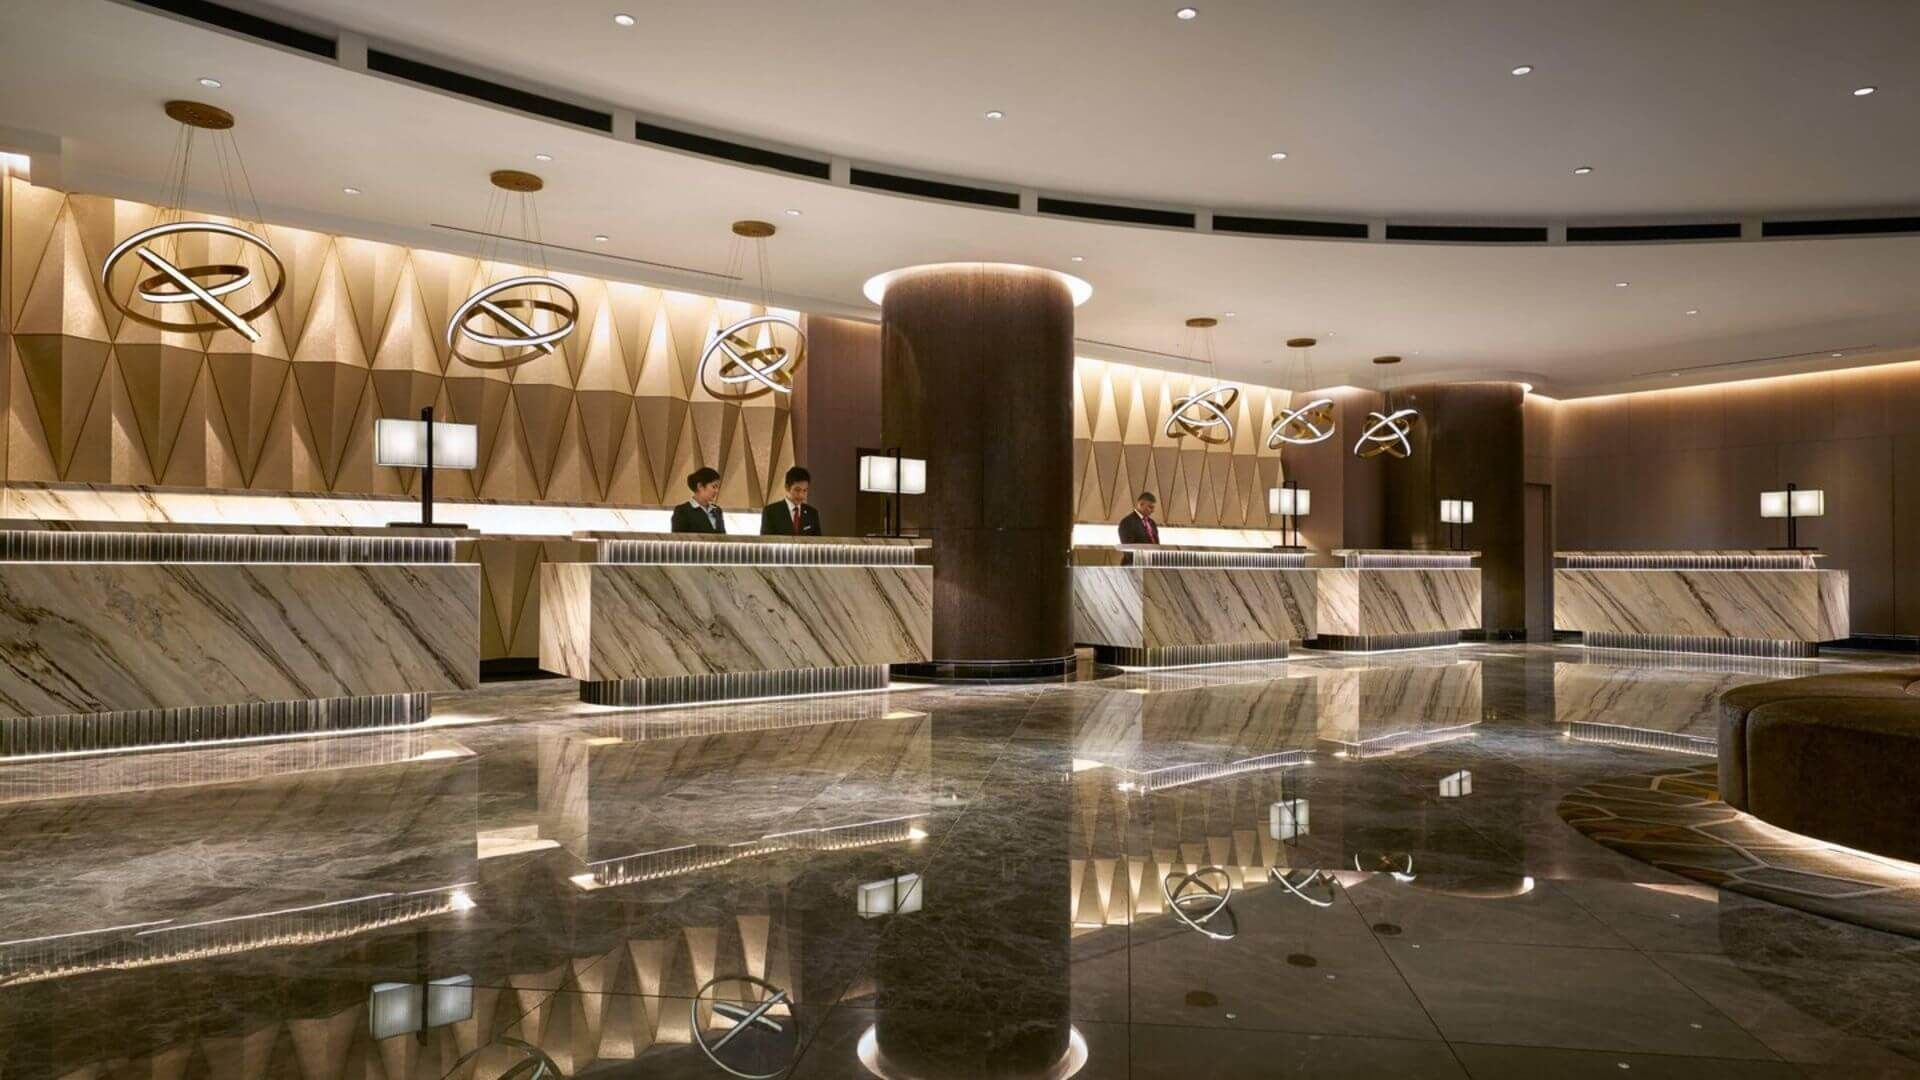 #JW Marriott Hotel Kuala Lumpur #KualaLumpur #Asia #Malaysia #Hotels #travel #travelblogger #travelgram #travelguide #travels #travelling #travelblog #traveladdict #traveladikkt #beautifuldestinations #bucketlist #luxury #luxurylifestyle #luxurytravel #luxurydestinations #lifestyle #lifestyleblogger #beautifulplaces #beautifulplace #beautiful #beautifuldestination